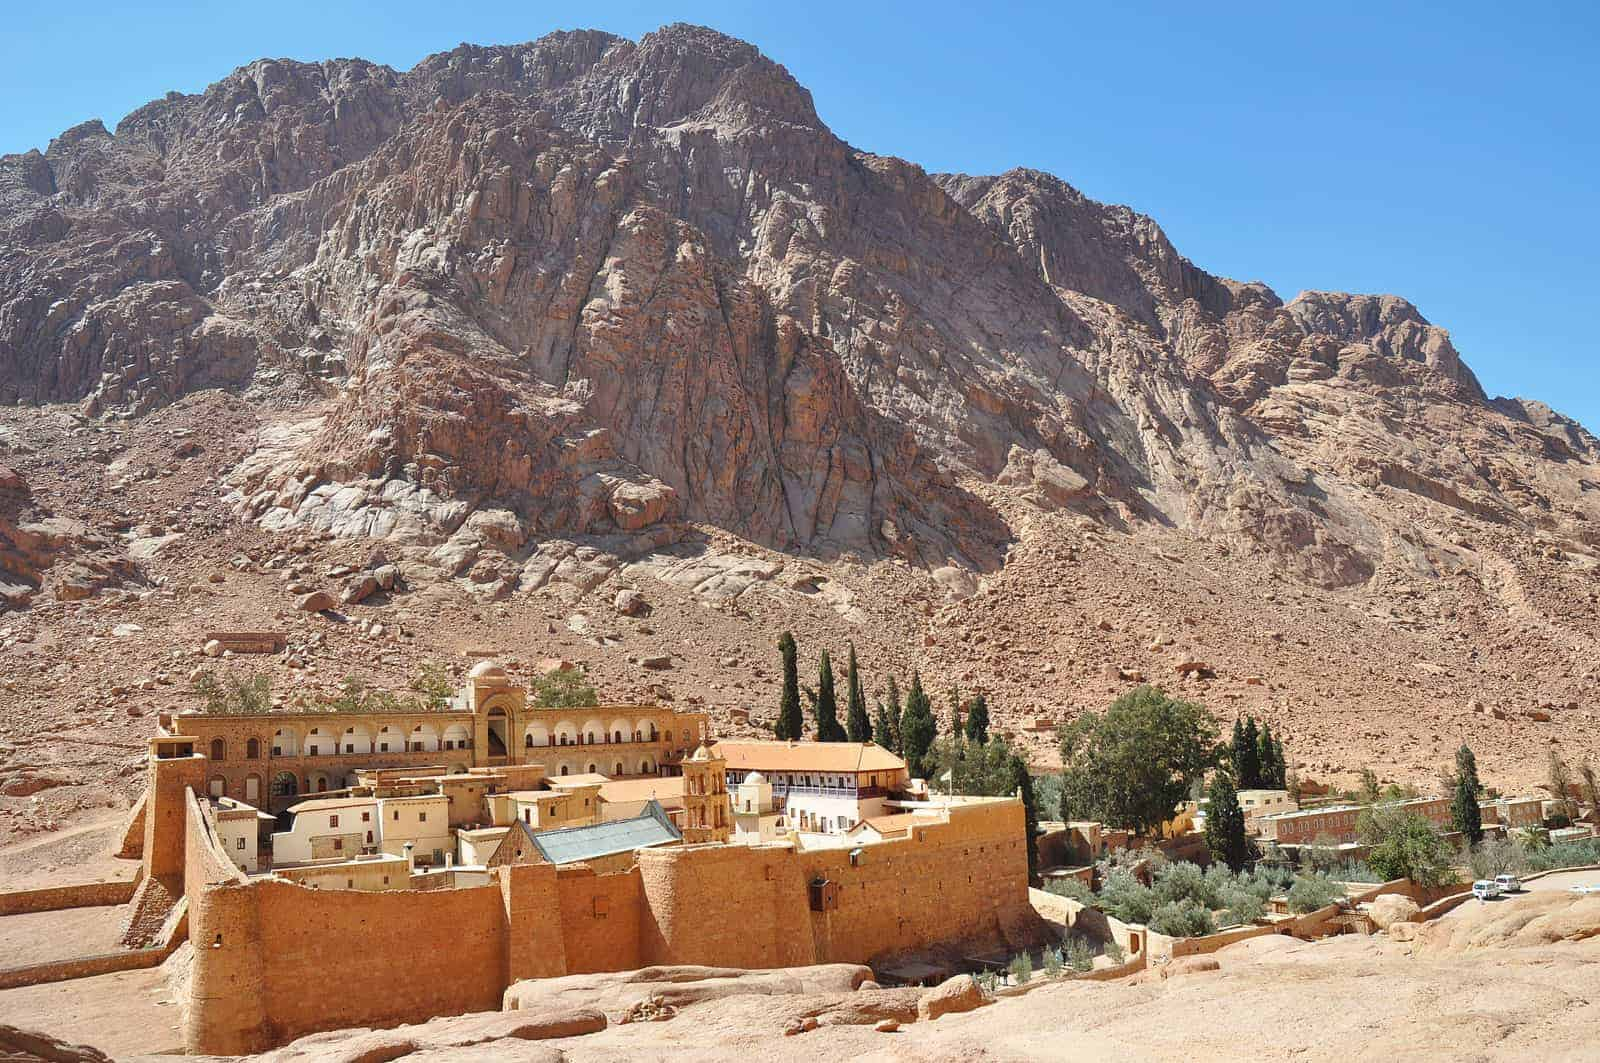 St. Catherine Monastery is one of the most amazing Christina monuments in Egypt - Photo Credit: Encyclopaedia Britannica